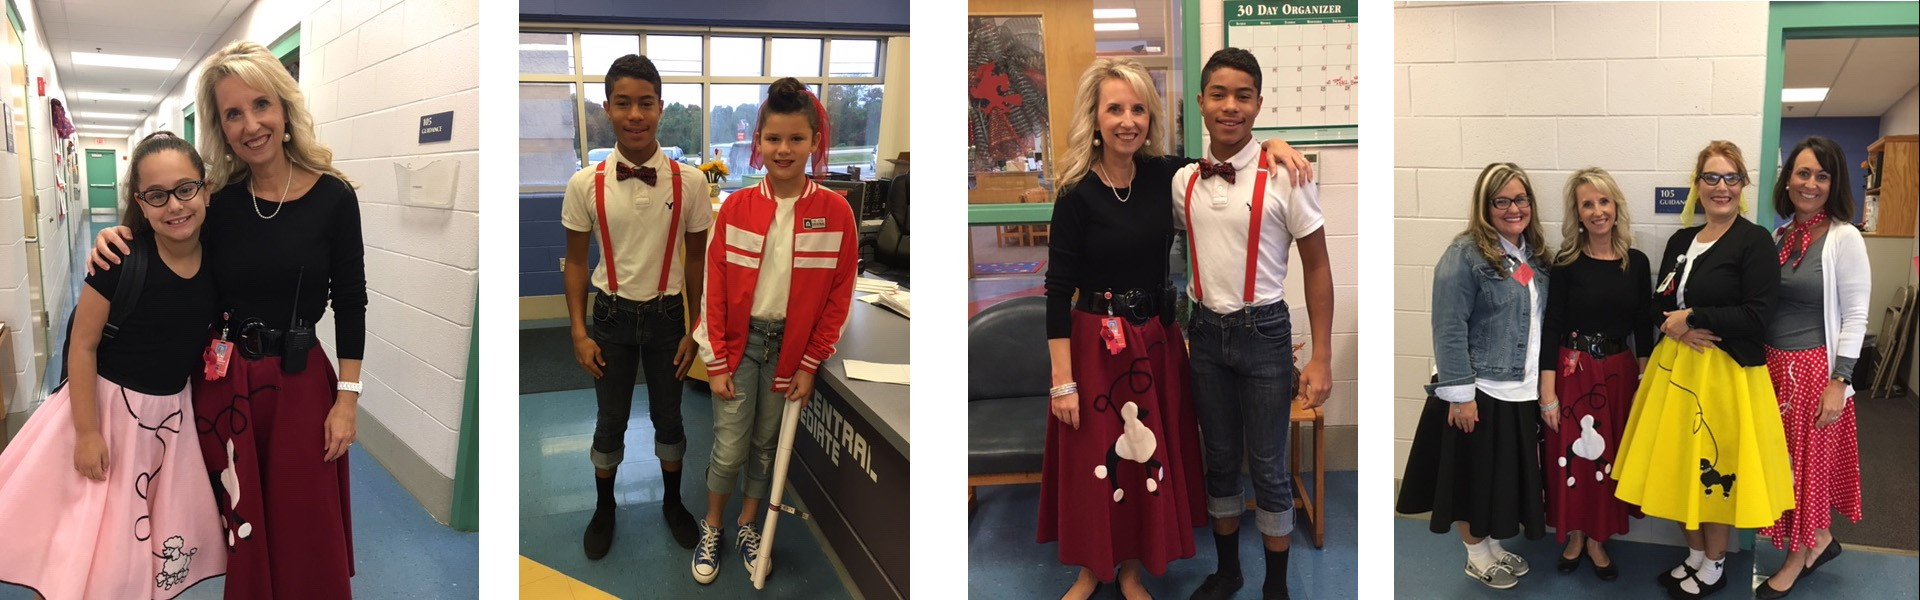 WCIS Celebrating Red Ribbon Week 50's Style!